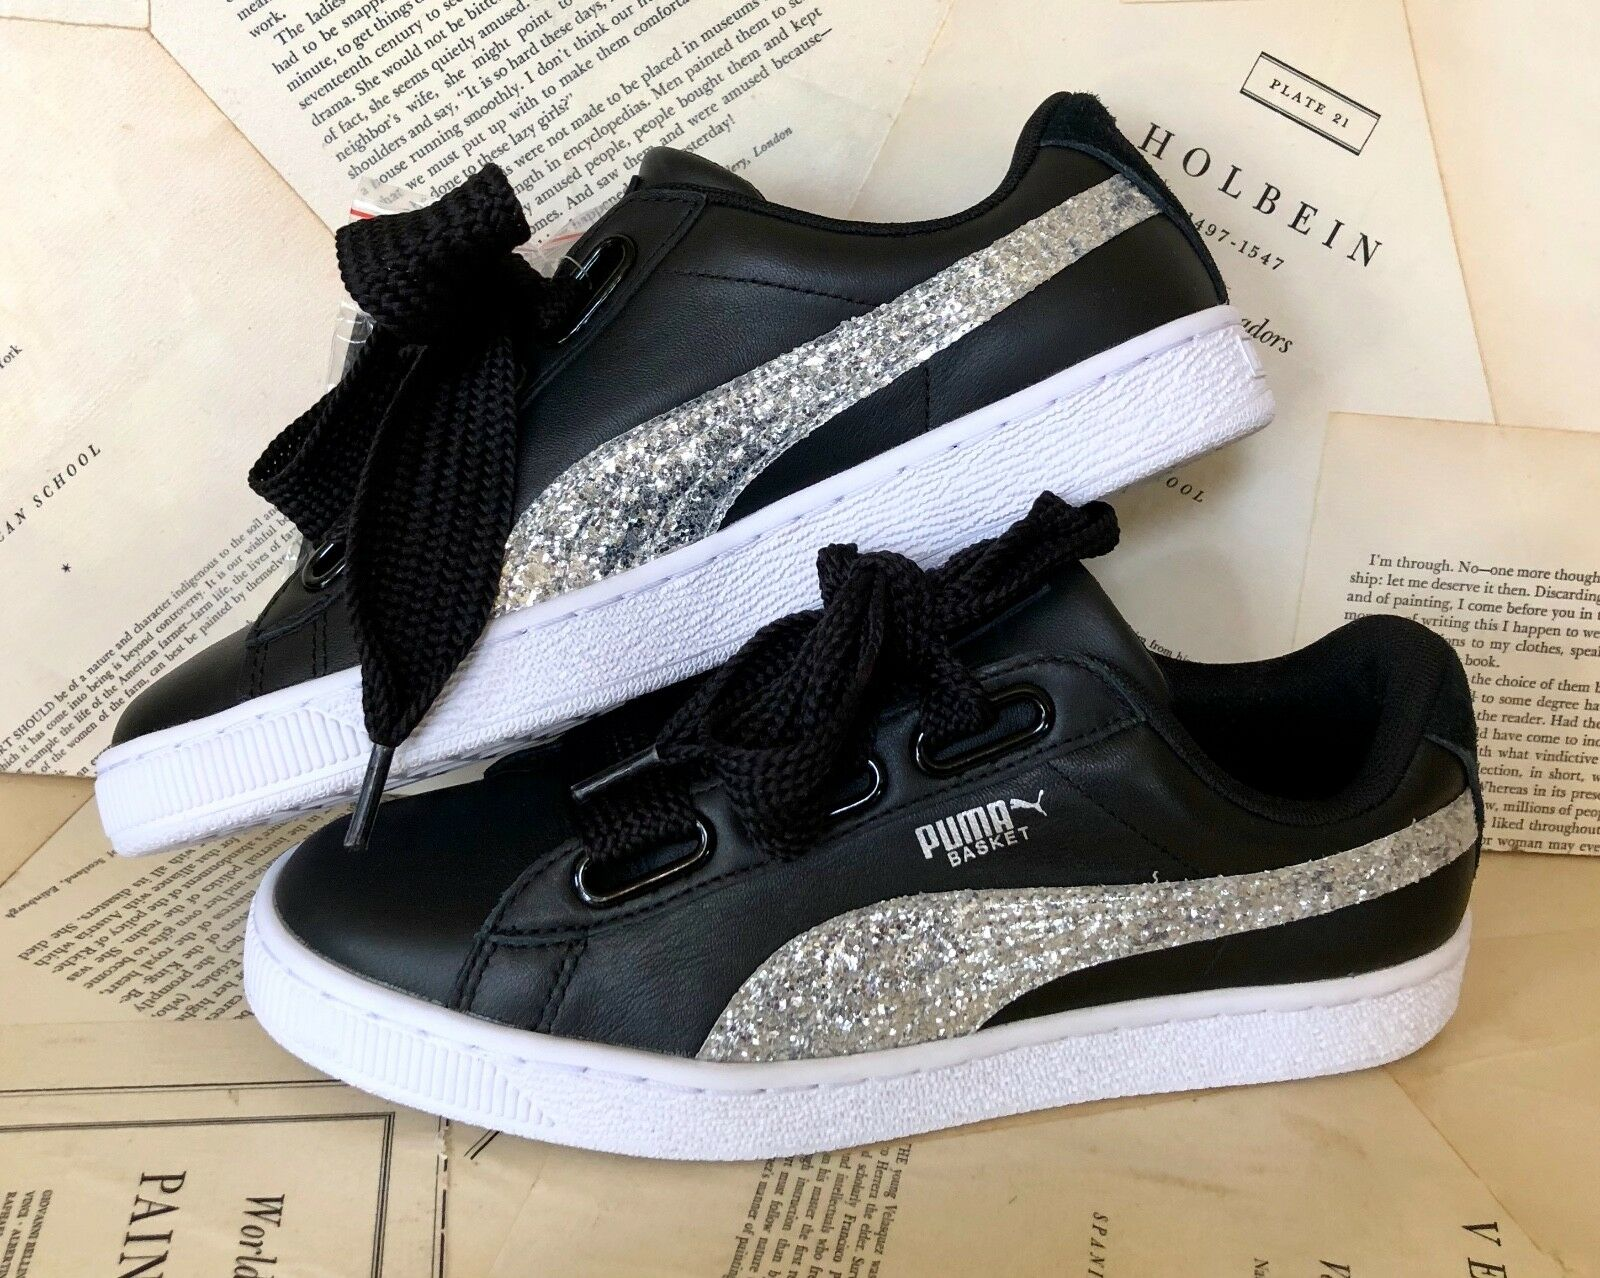 NEU Urban Outfitters Puma schwarz Leder Silver Logo Lace Sneakers 39 / 8.5